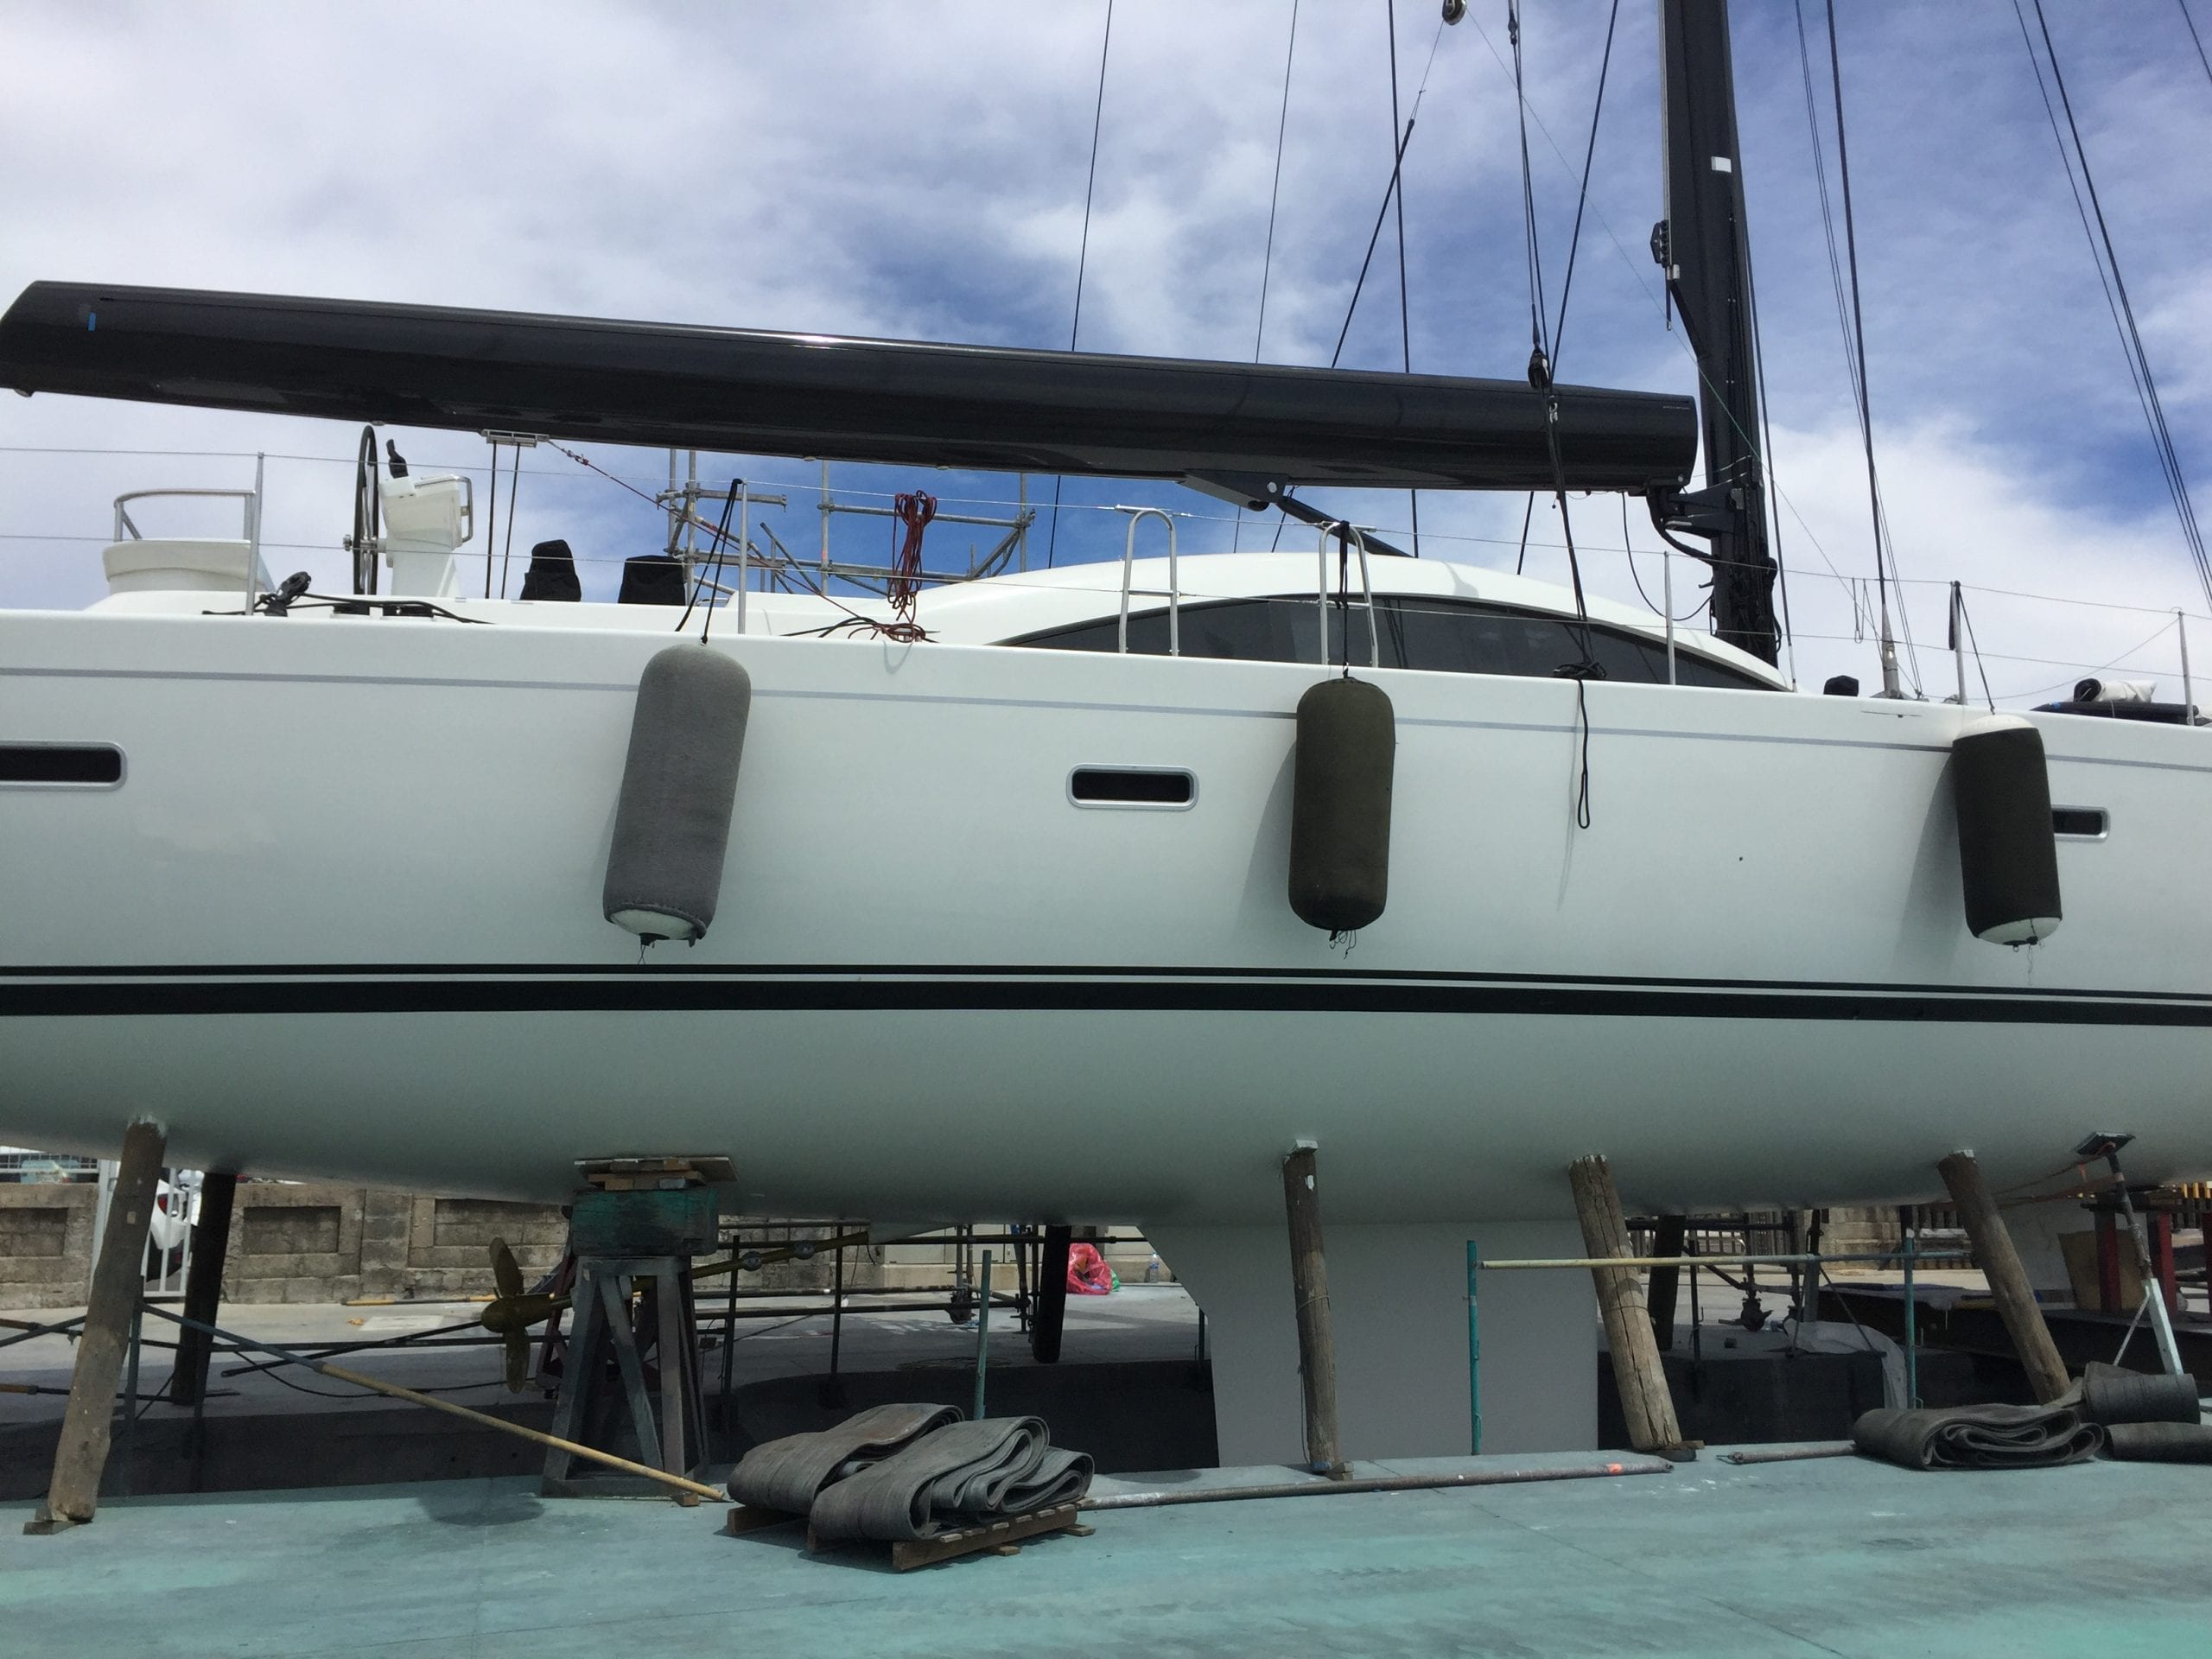 Yacht technical services: commisioning